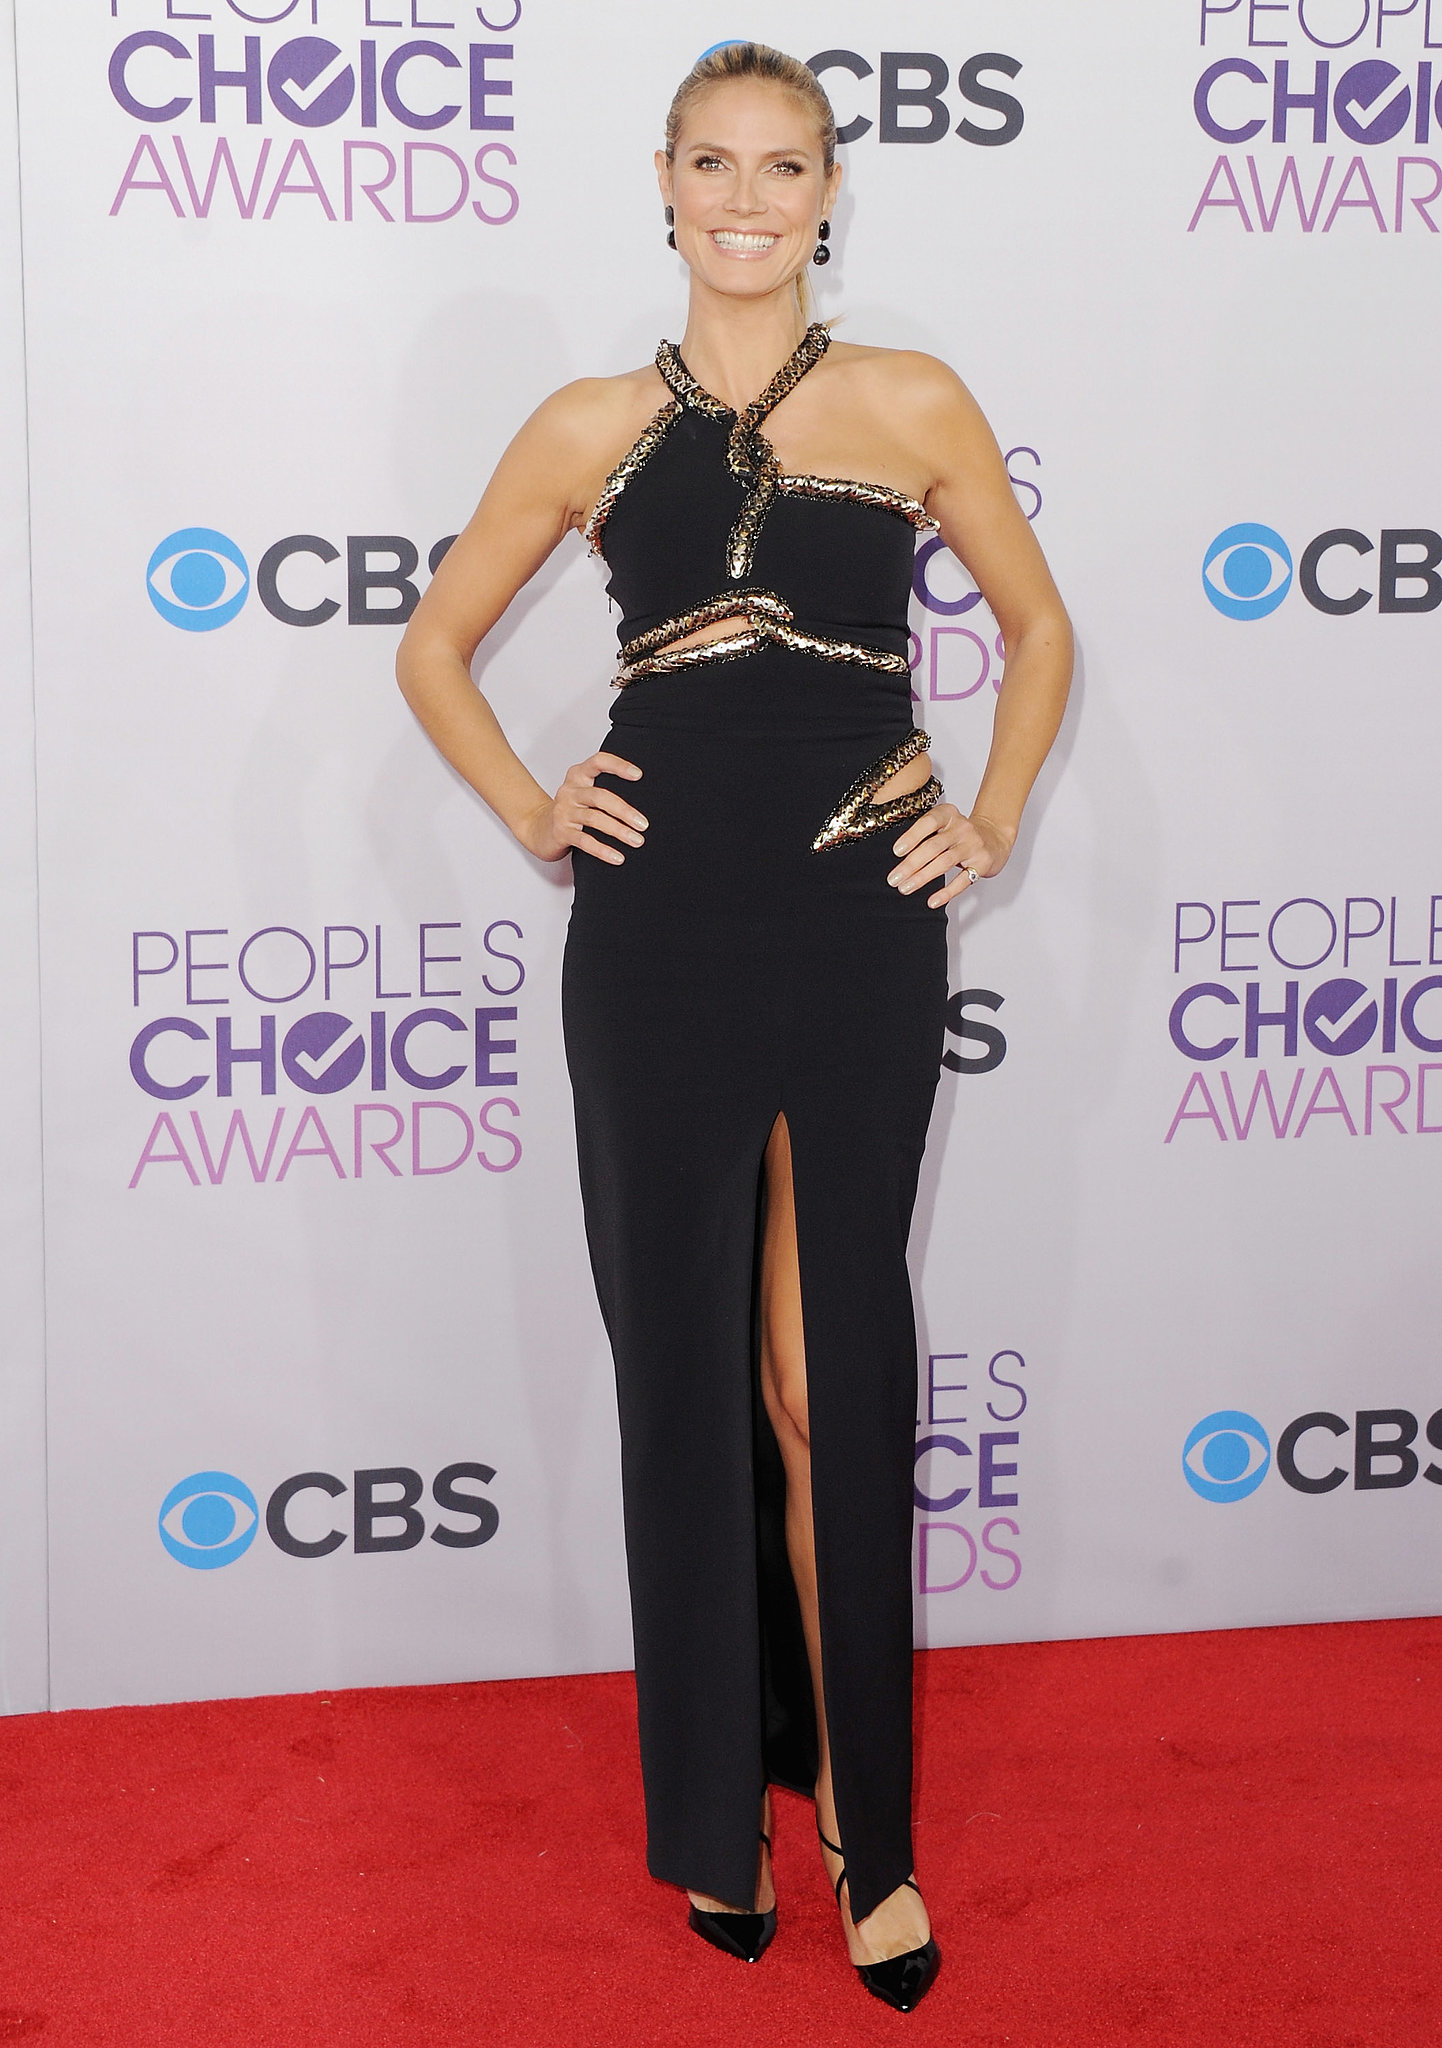 Heidi Klum in a Cutout Julien Macdonald at the 2013 People's Choice Awards